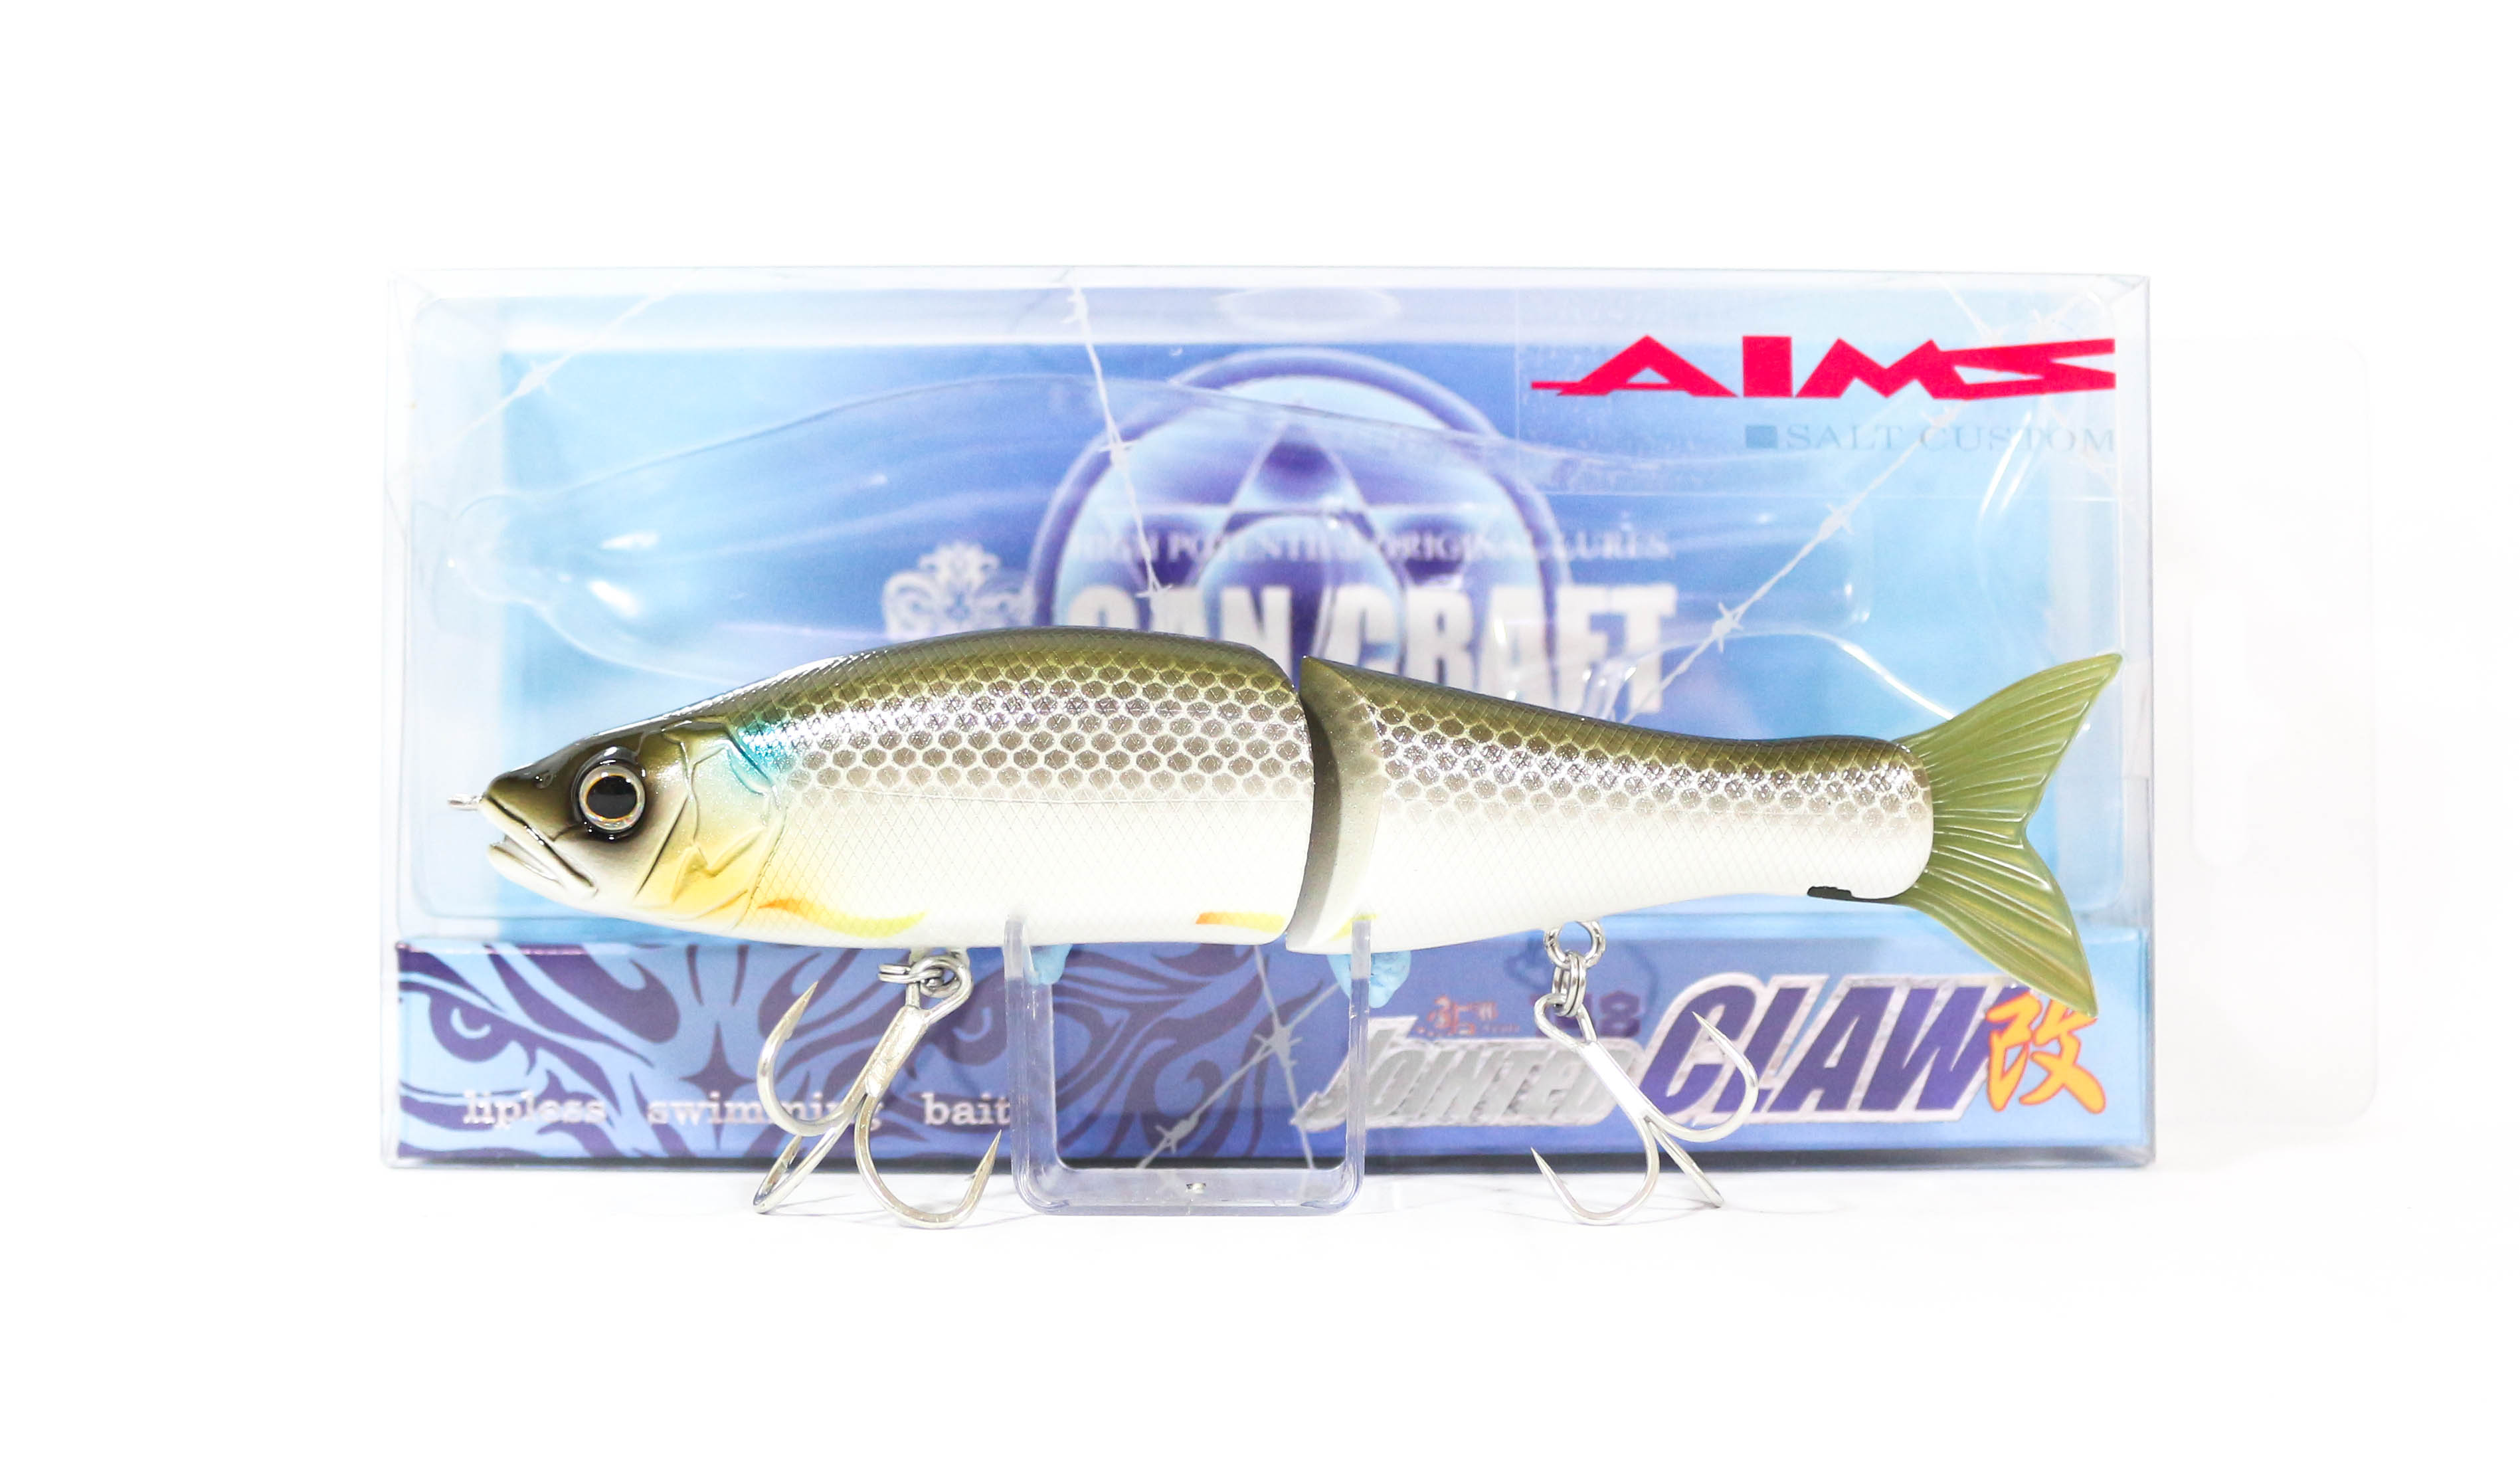 Gan Craft Jointed Claw 148S Salt Floating Jointed Lure AS-07 (0076)